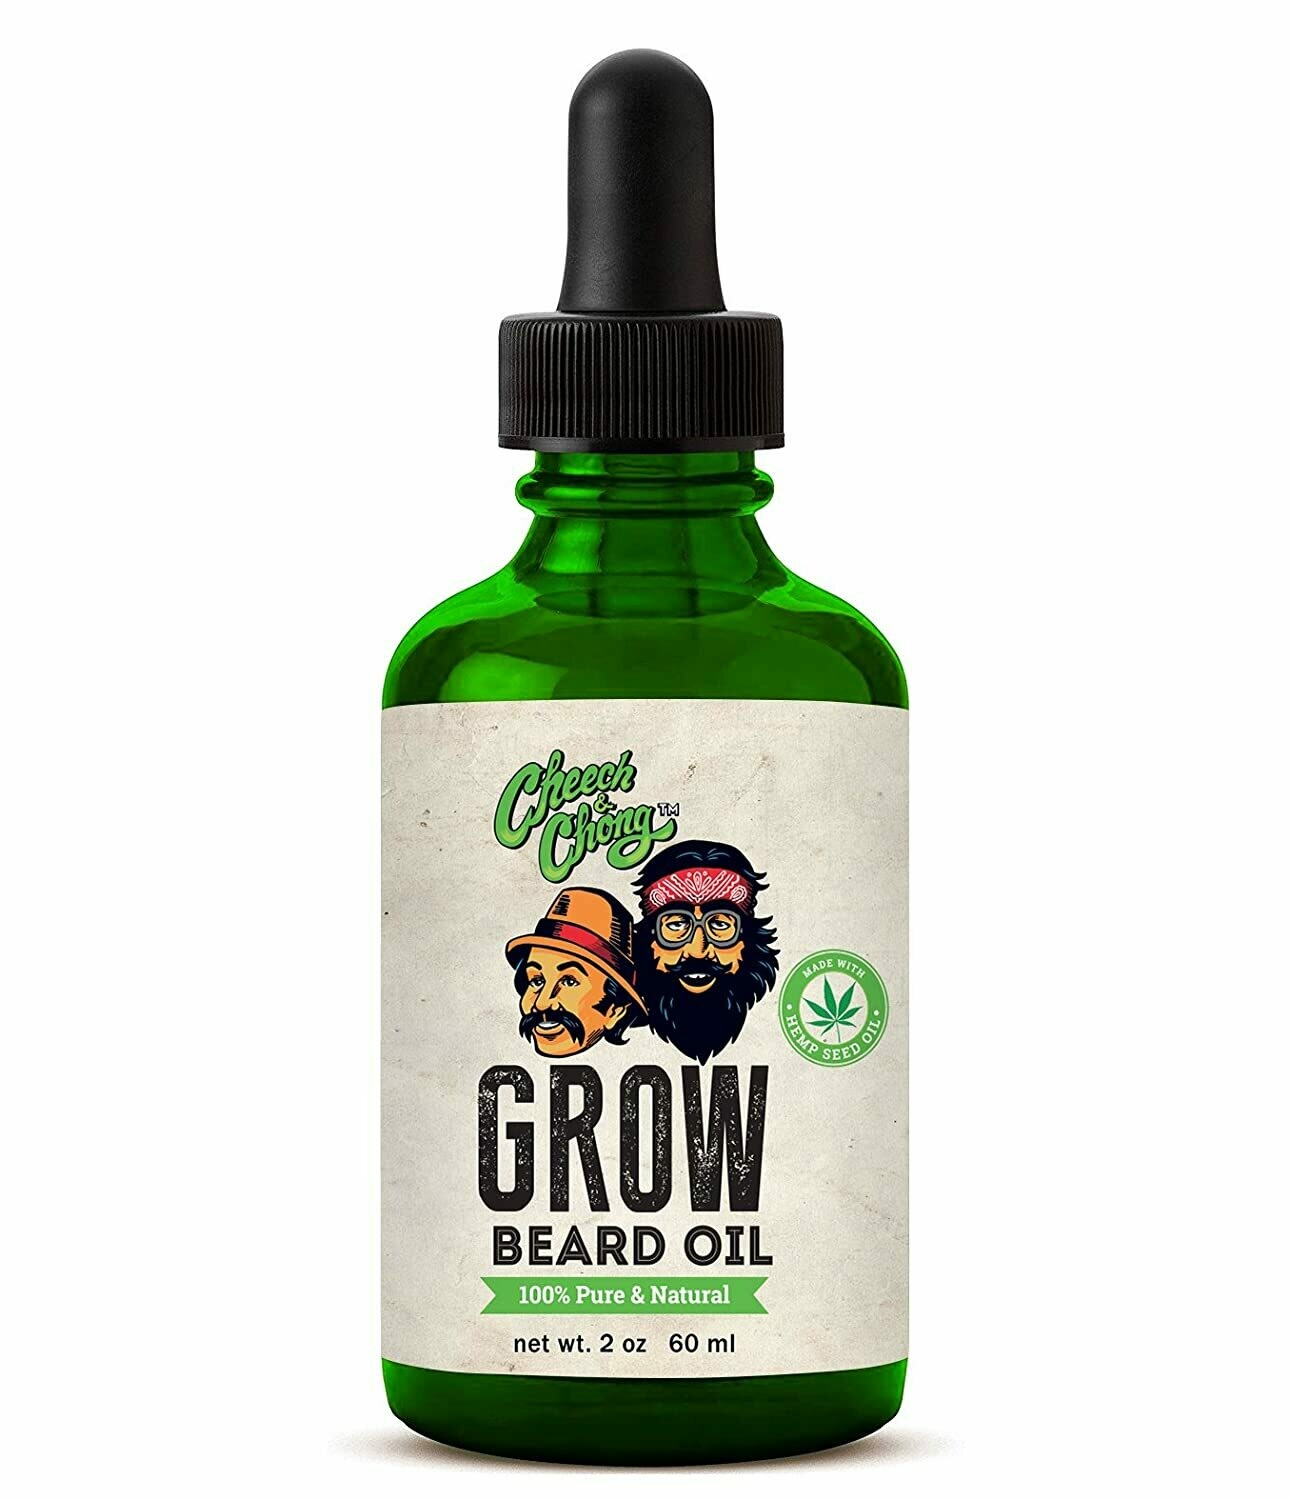 CHEECH & CHONG GROW BEARD OIL